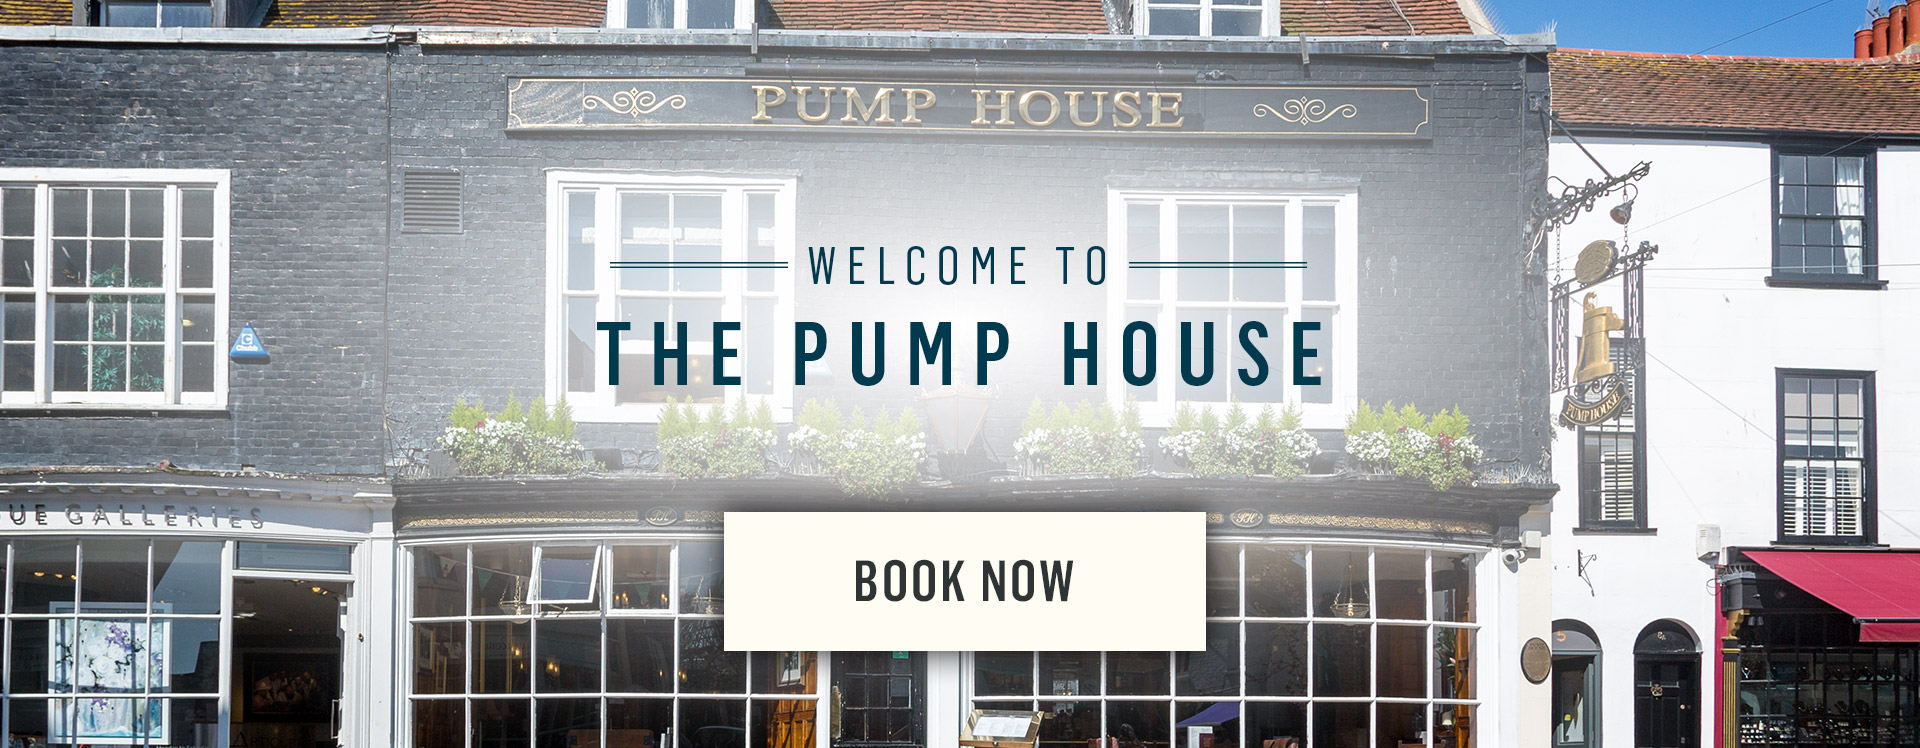 Welcome to The Pump House - Book Now